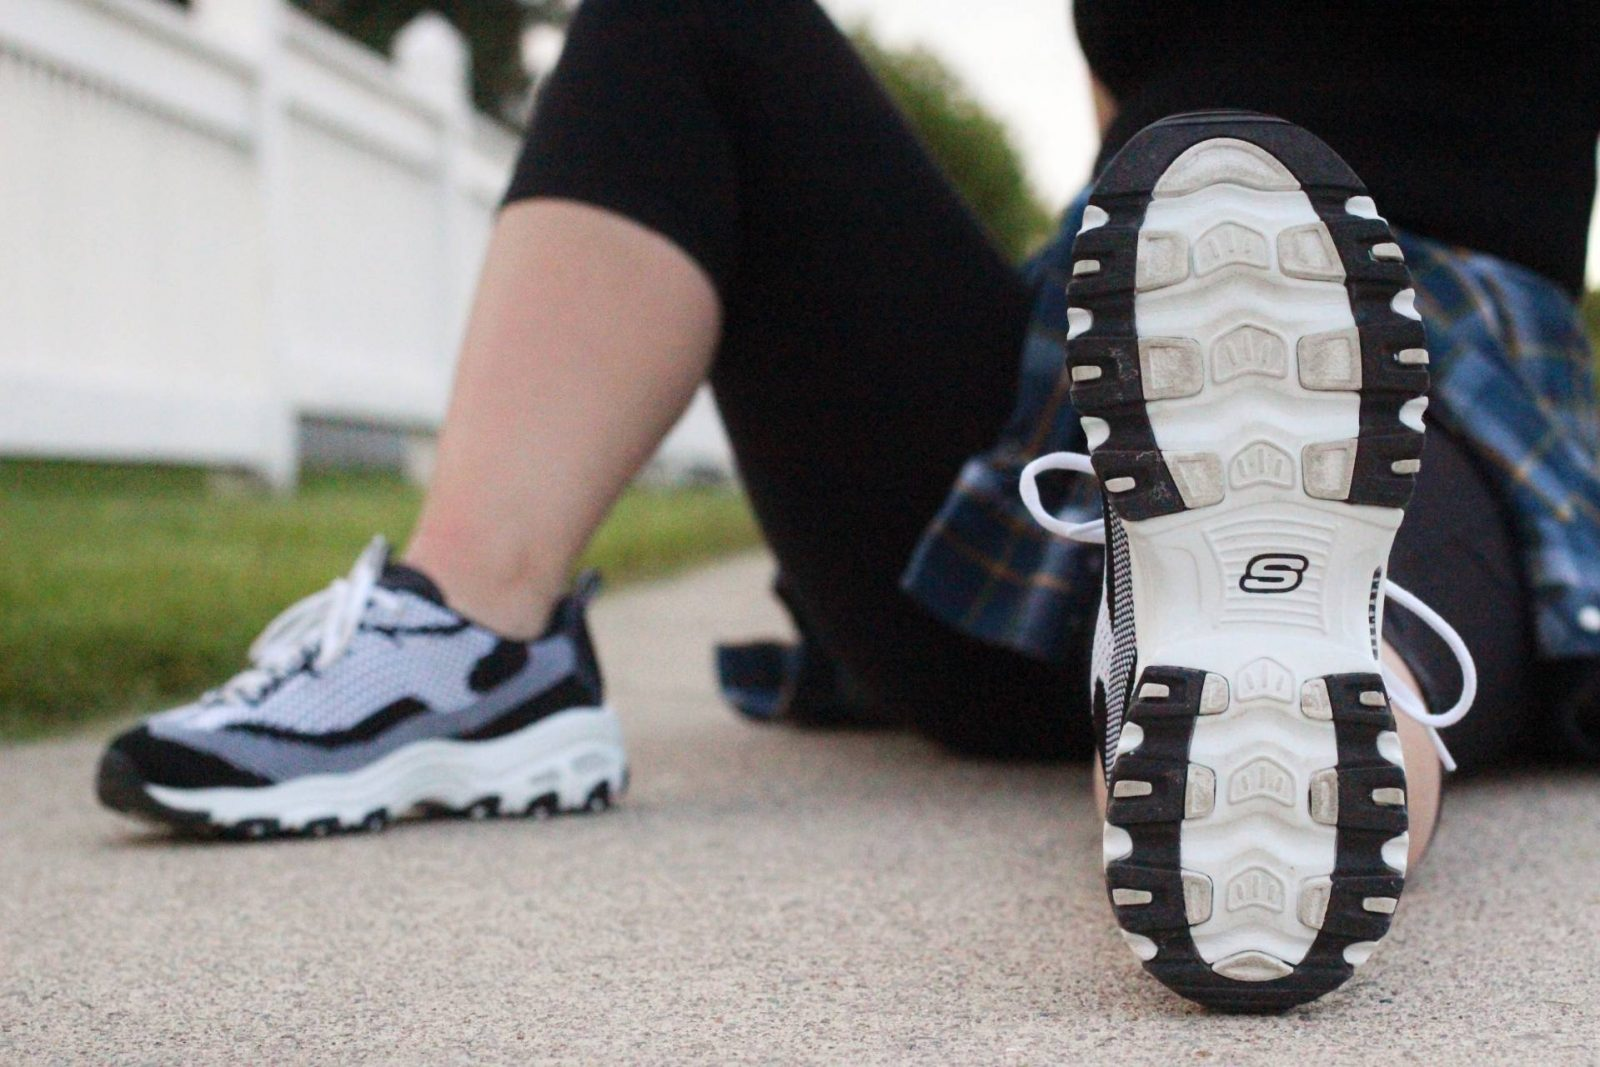 Running into Summer w/ Skechers - Pearls and Polkadots